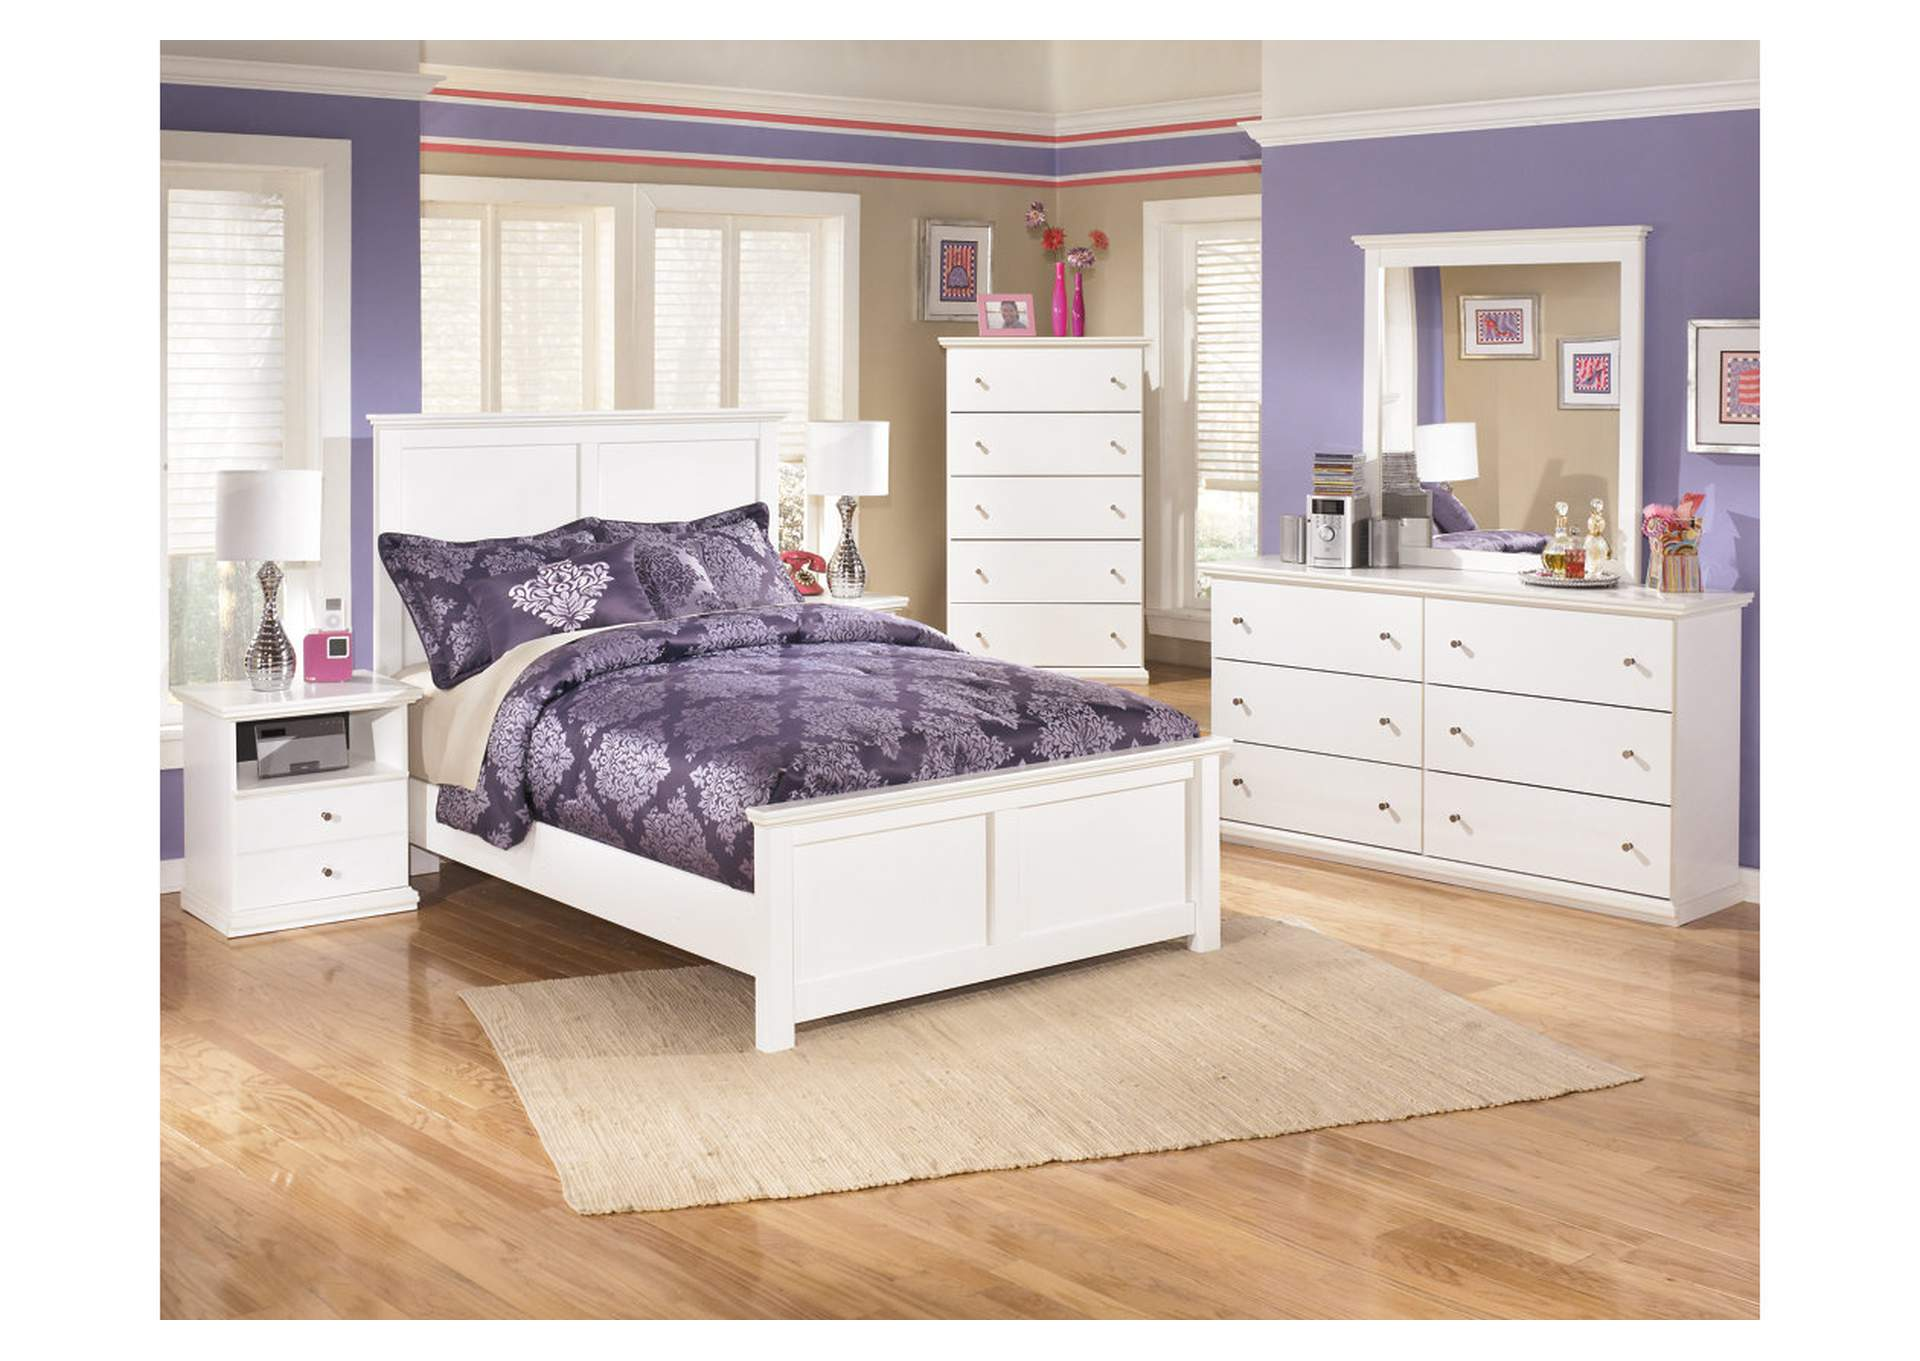 Bostwick Shoals Full Panel Bed w/Dresser, Mirror, Drawer Chest & Nightstand,Signature Design By Ashley